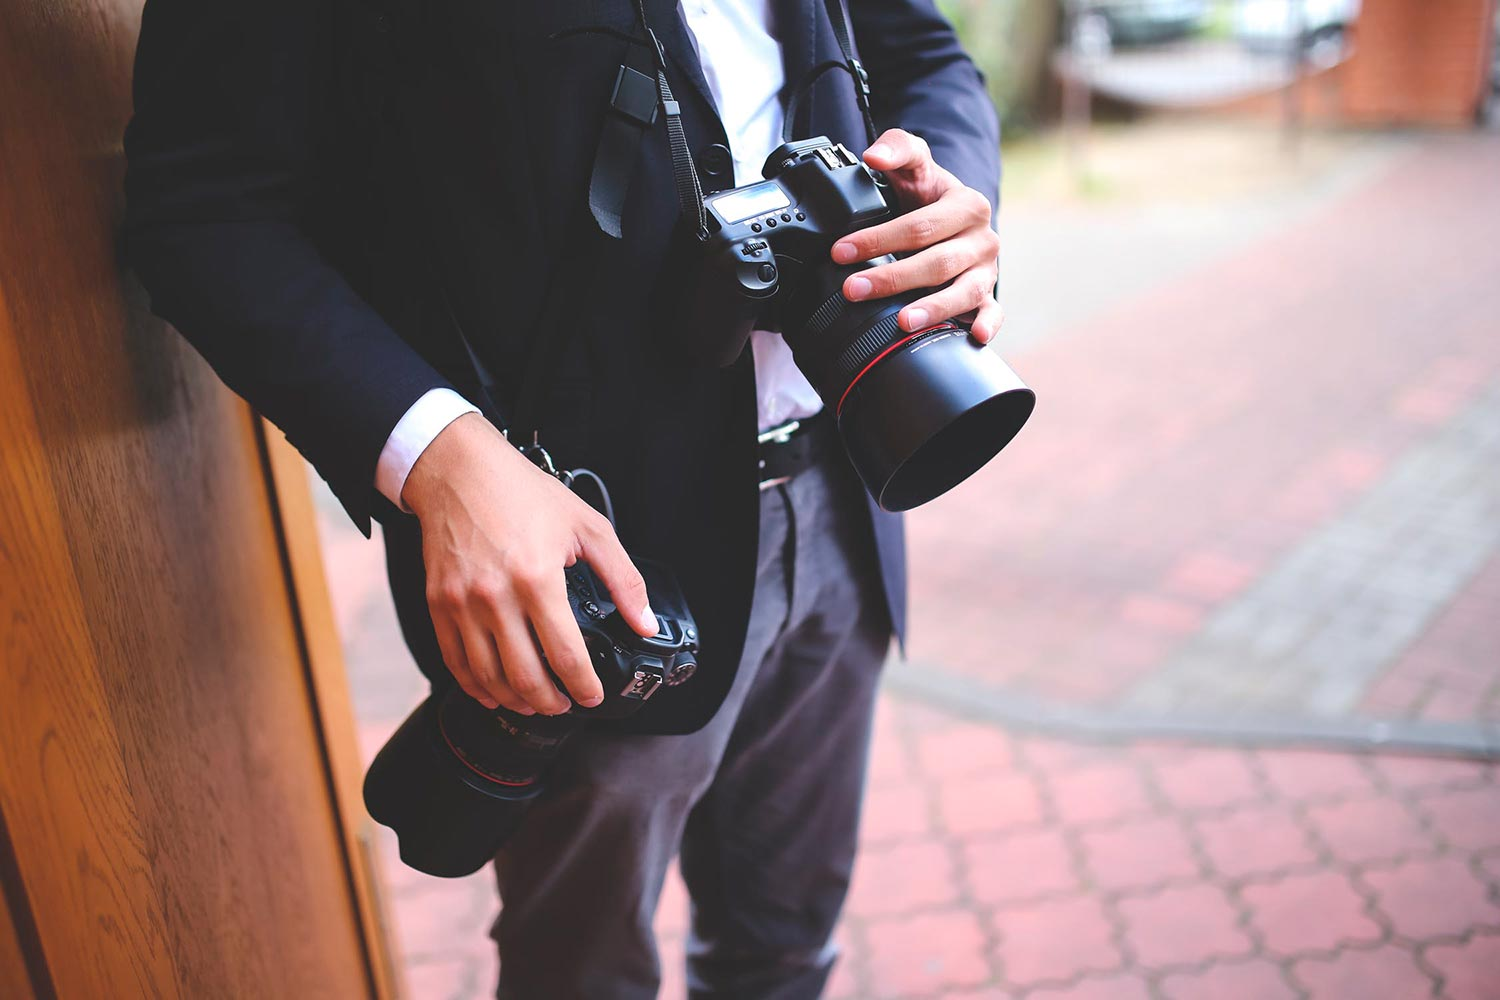 Wedding Photographer holding two cameras - article thumbnail